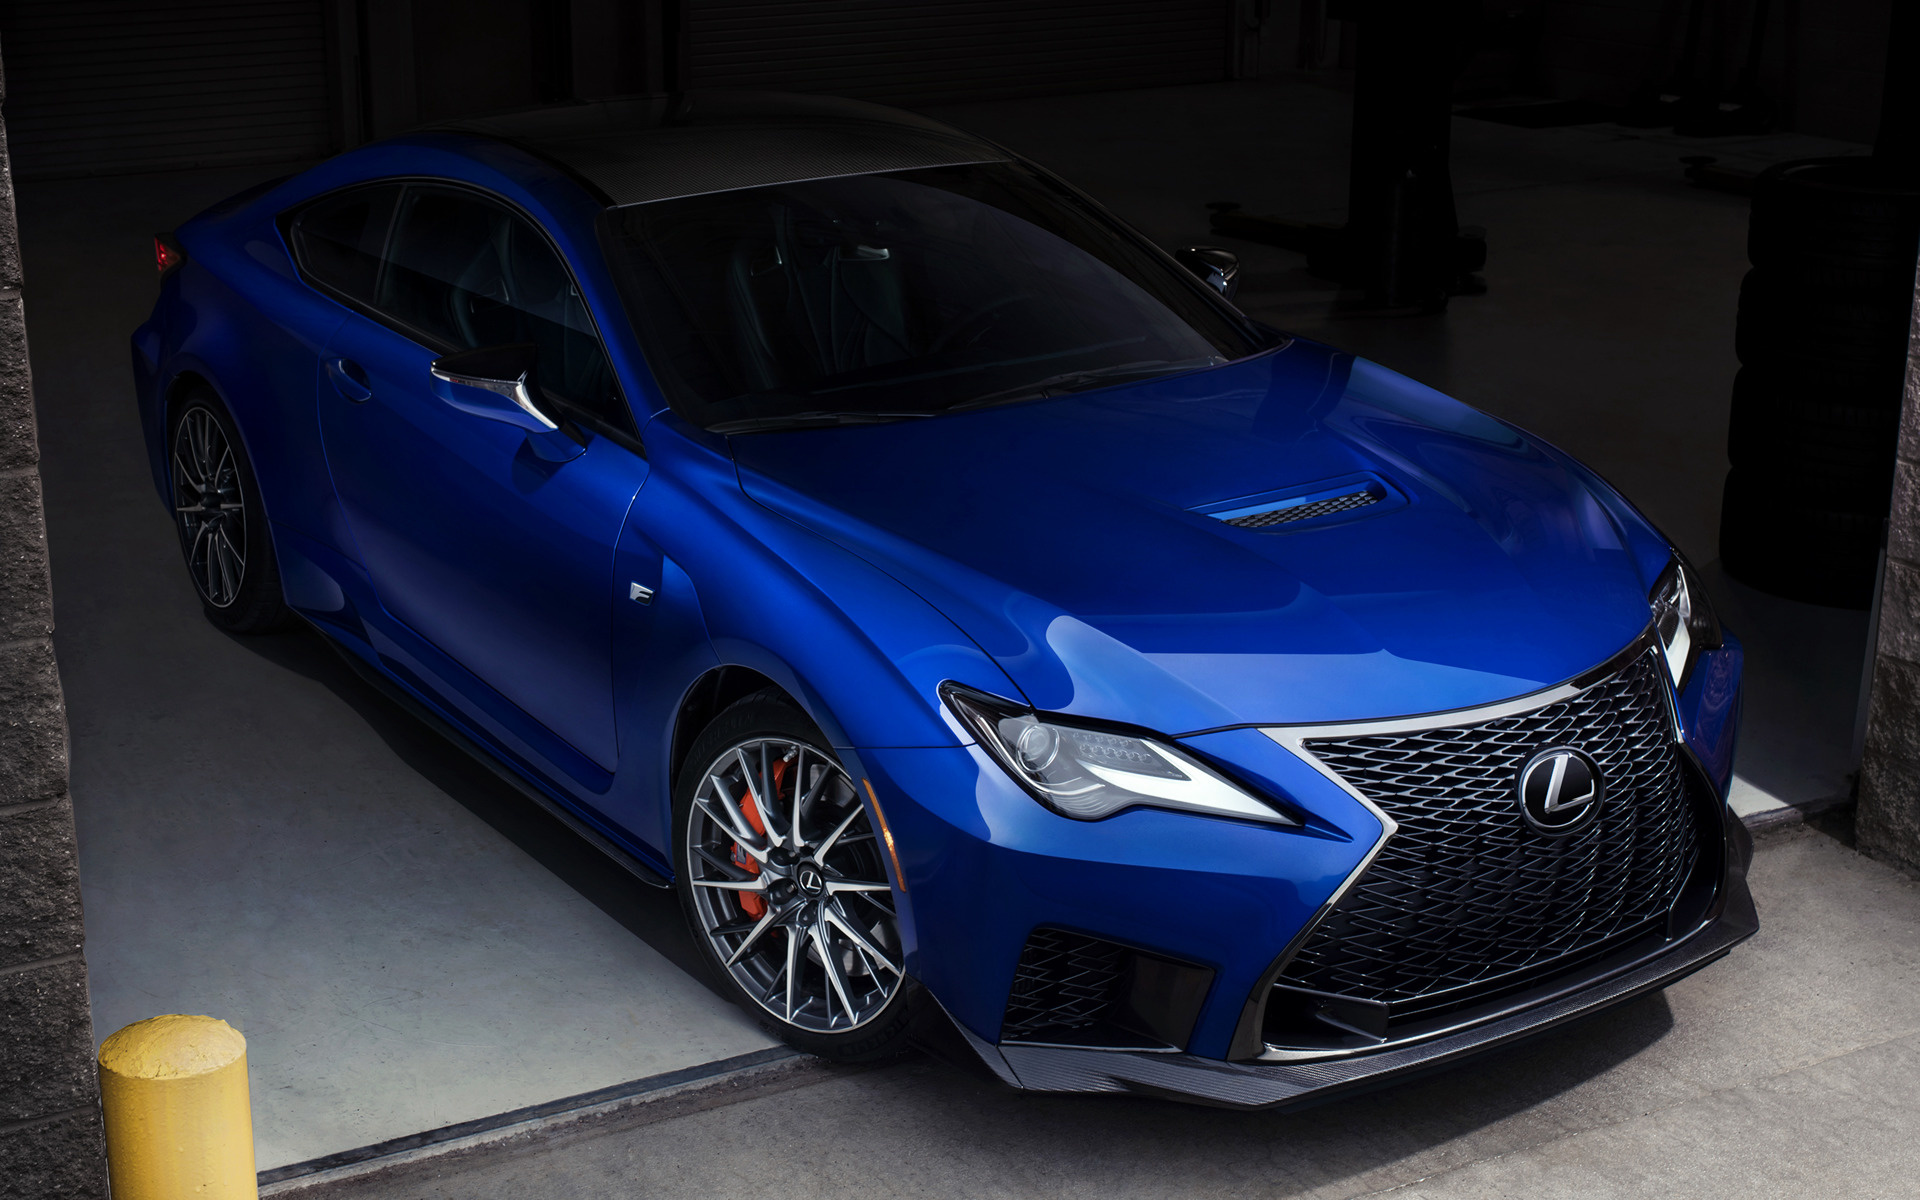 2020 Dodge Ram >> 2020 Lexus RC F (US) - Wallpapers and HD Images | Car Pixel